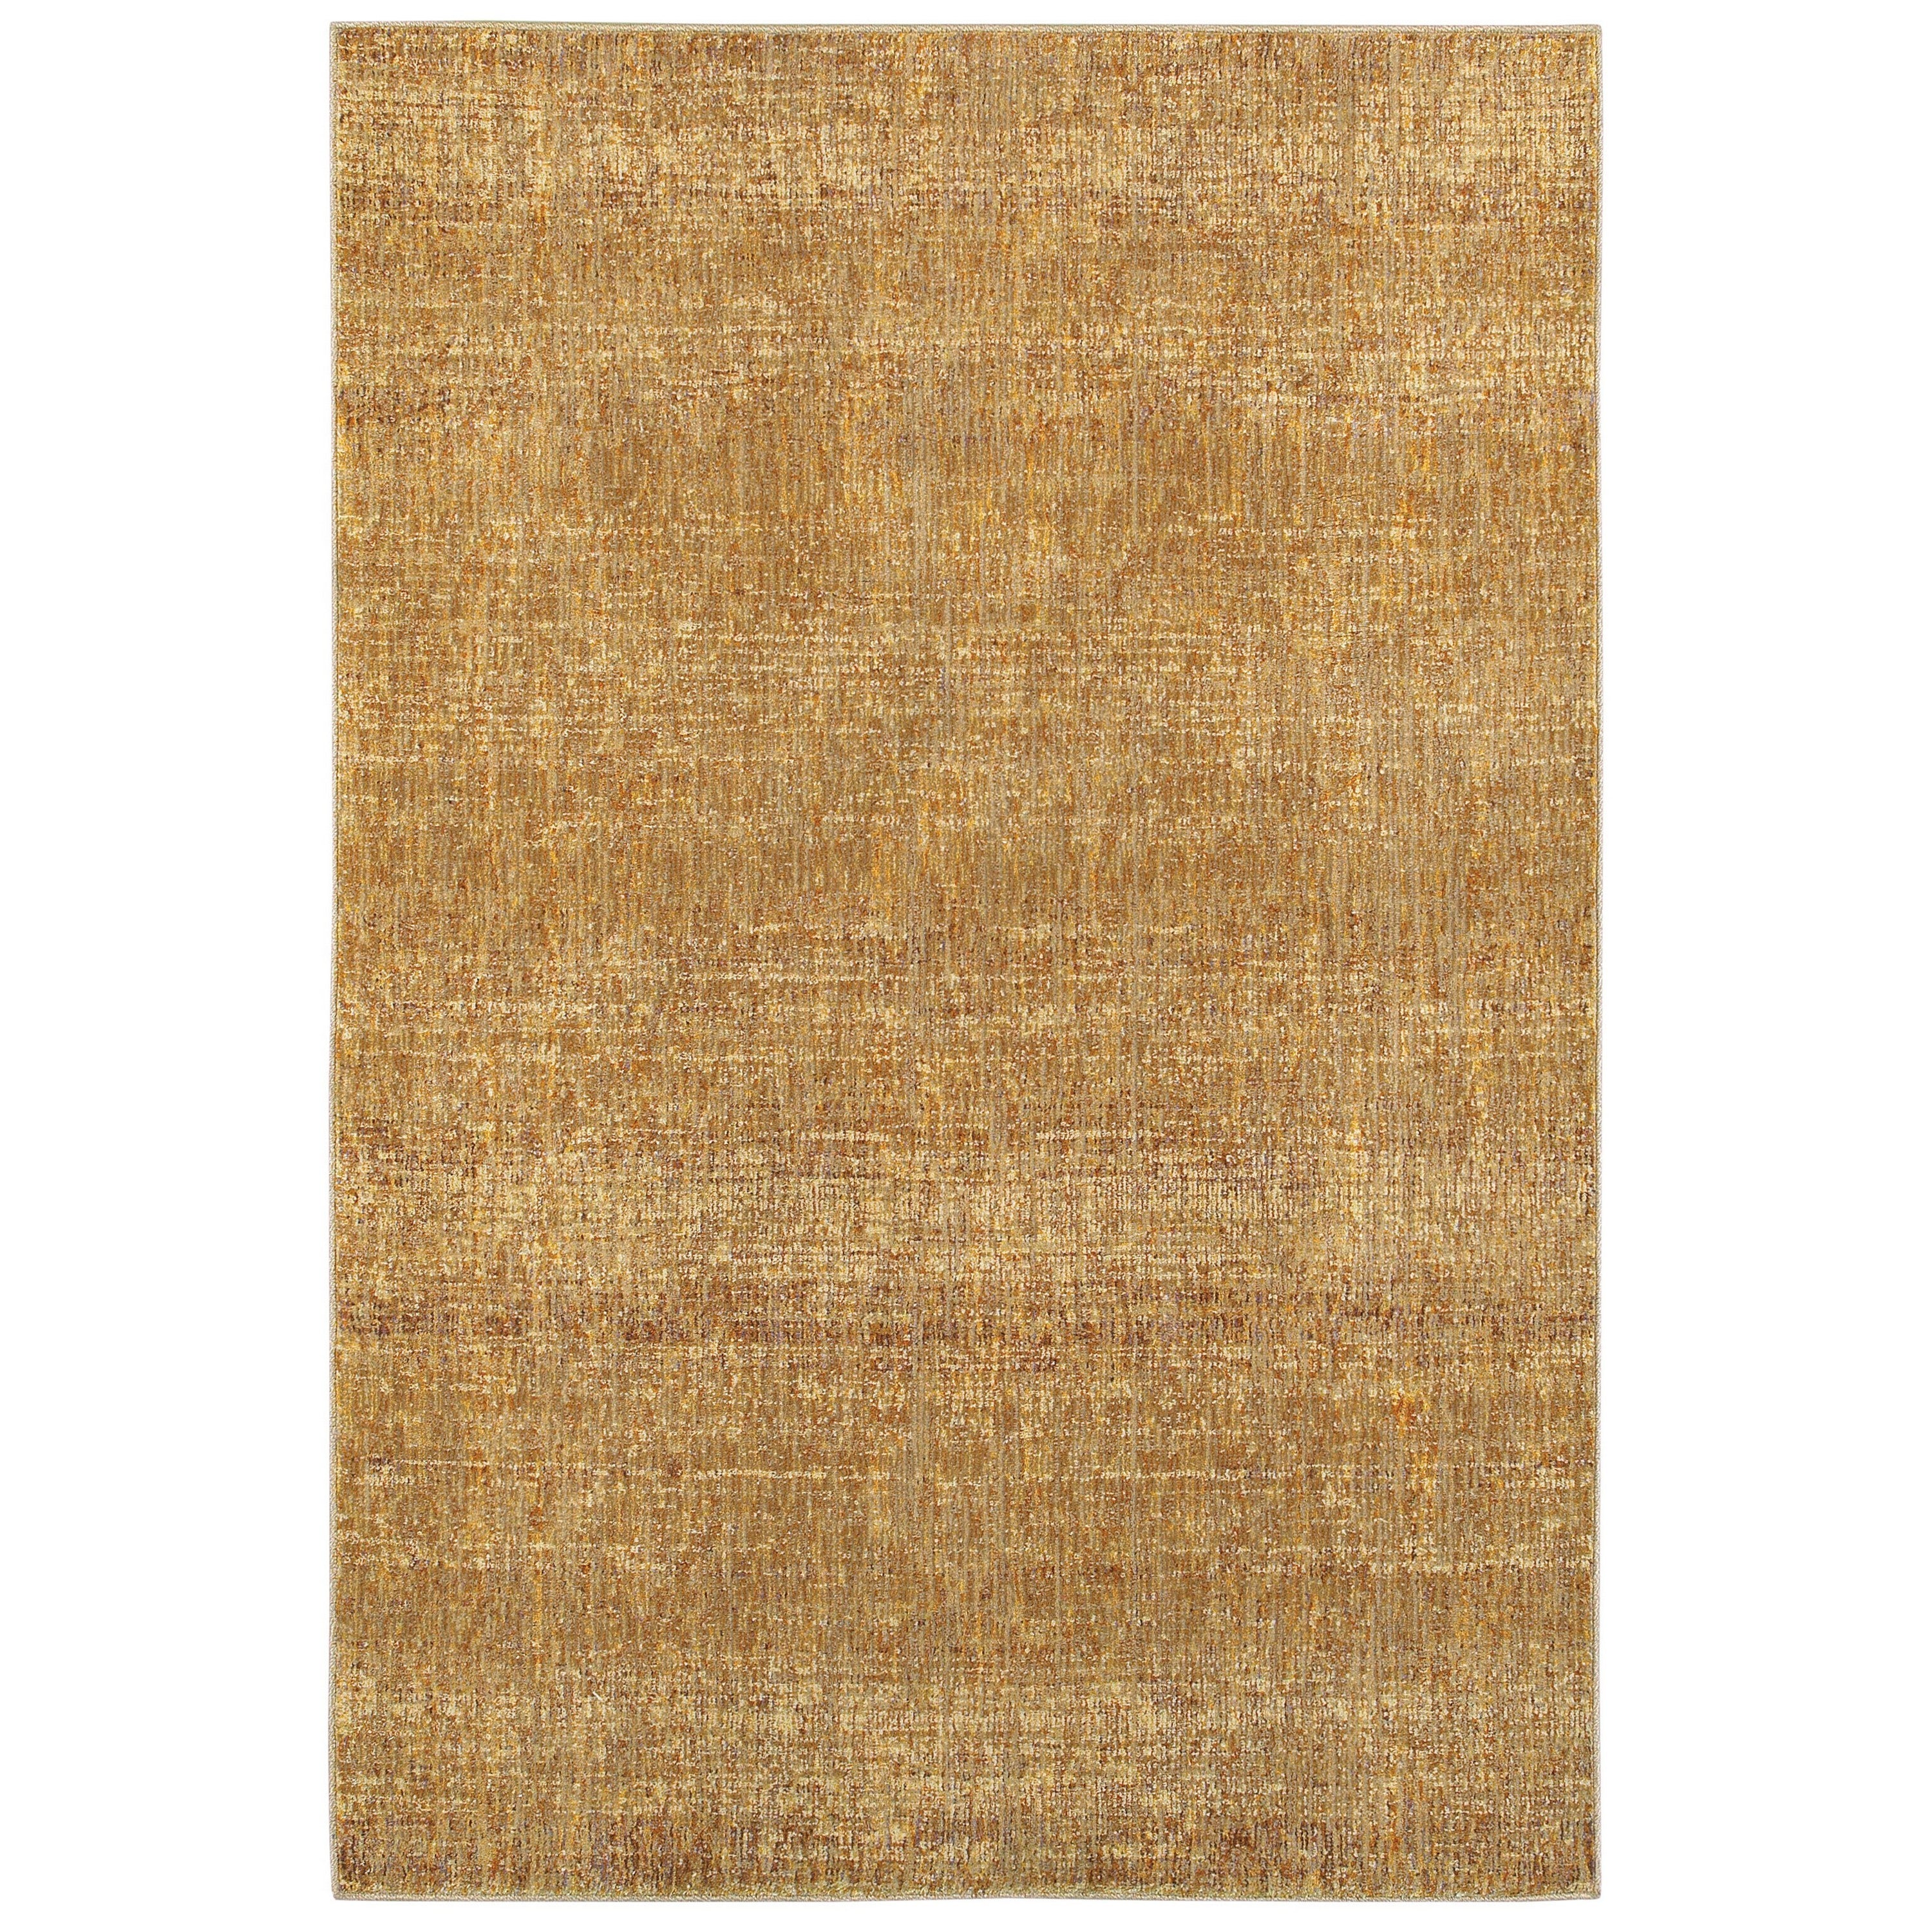 Style Haven Tonal Textures Gold/Yellow Area Rug (1'10 x 3'2)